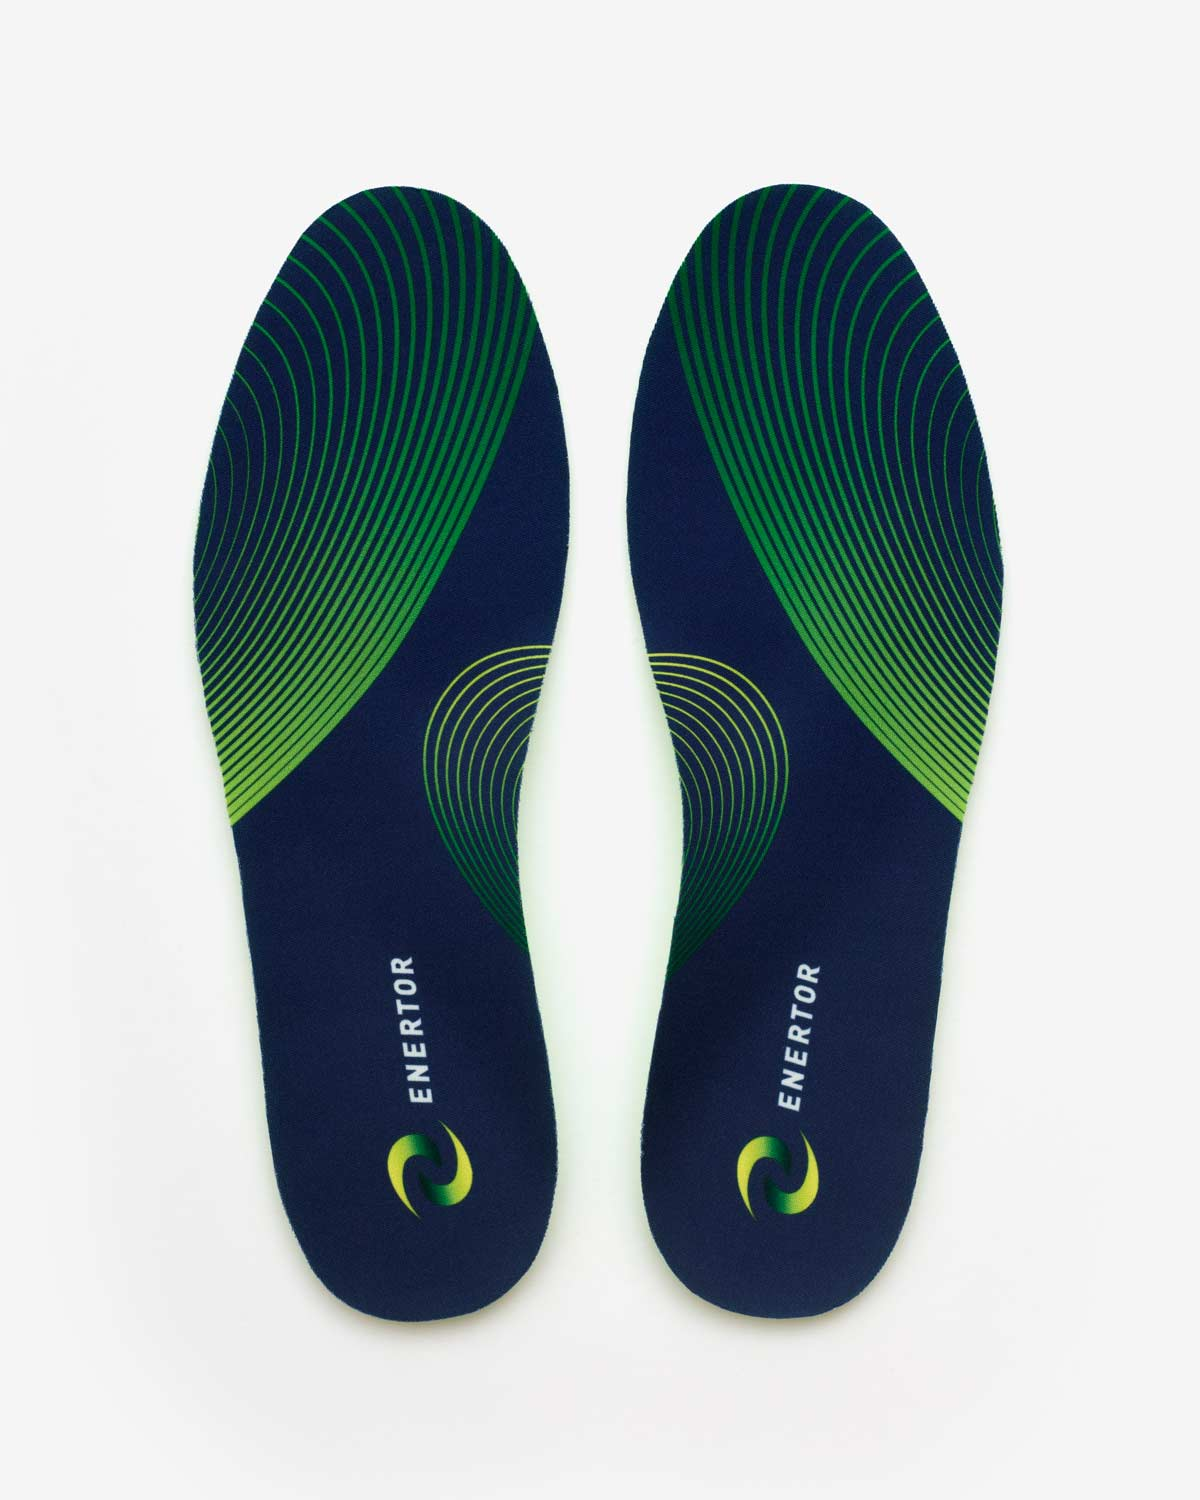 Running and Walking Twin Pack (2 pairs)